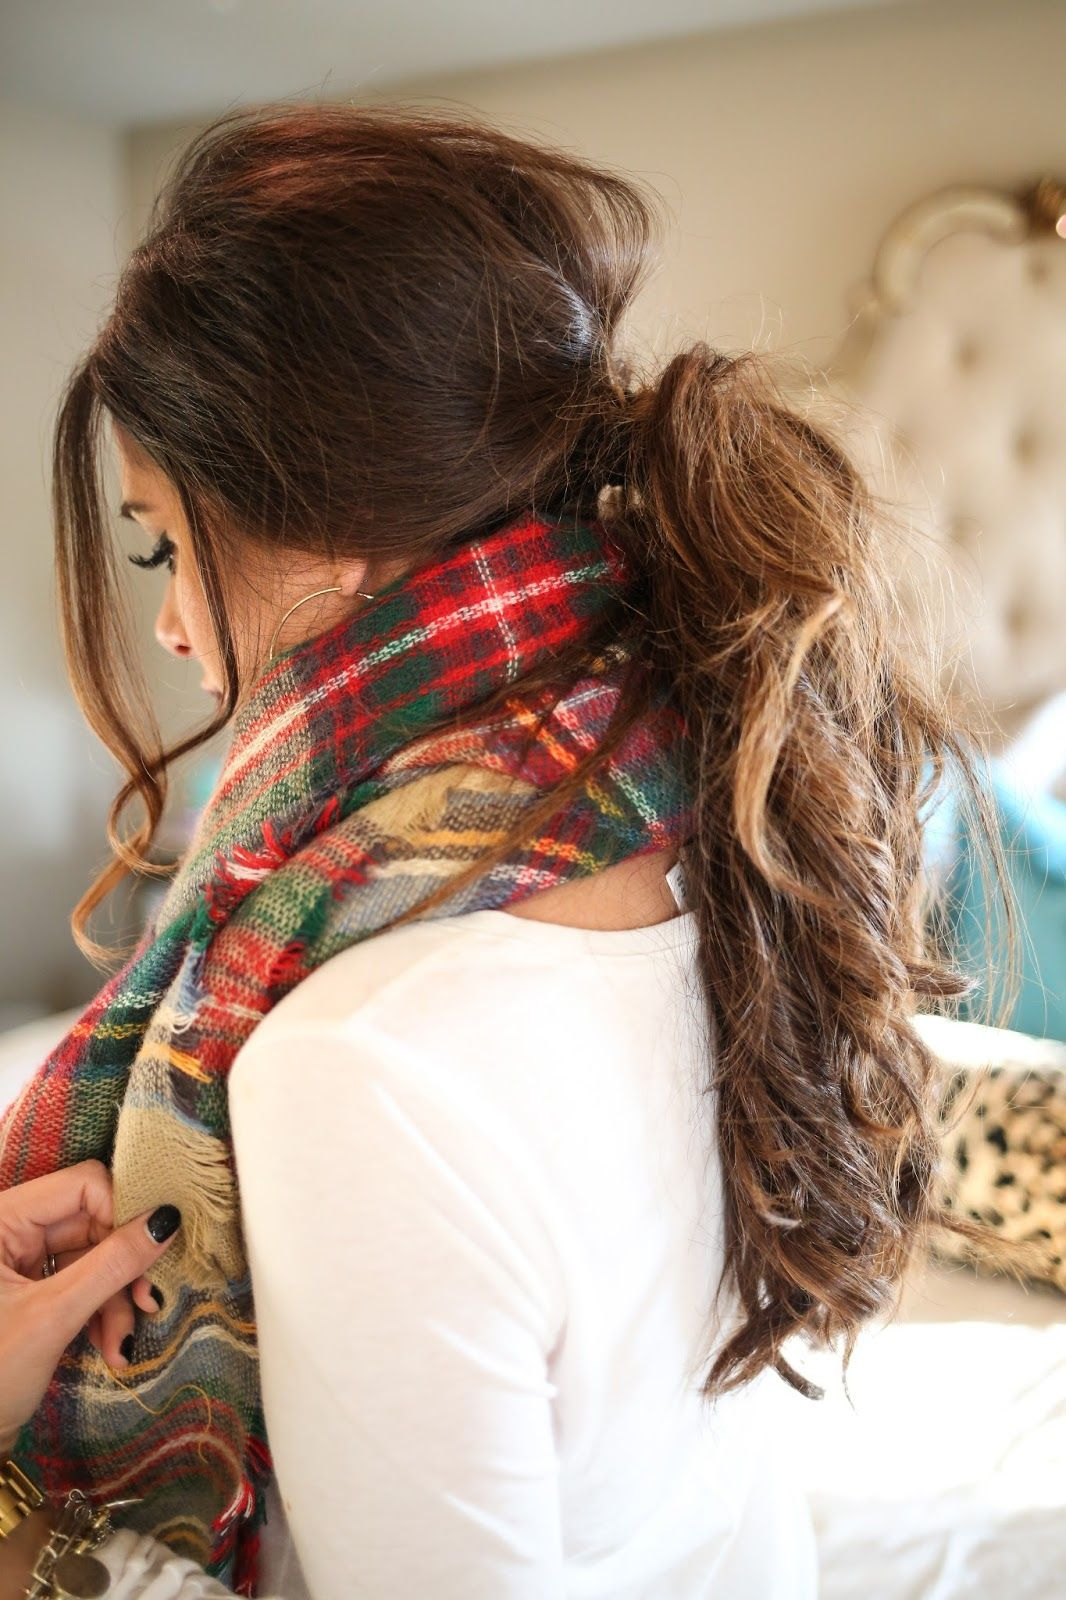 hairstyle-for-thanksgiving-fall-autumn-ponytail-messy-low-brunette.jpg